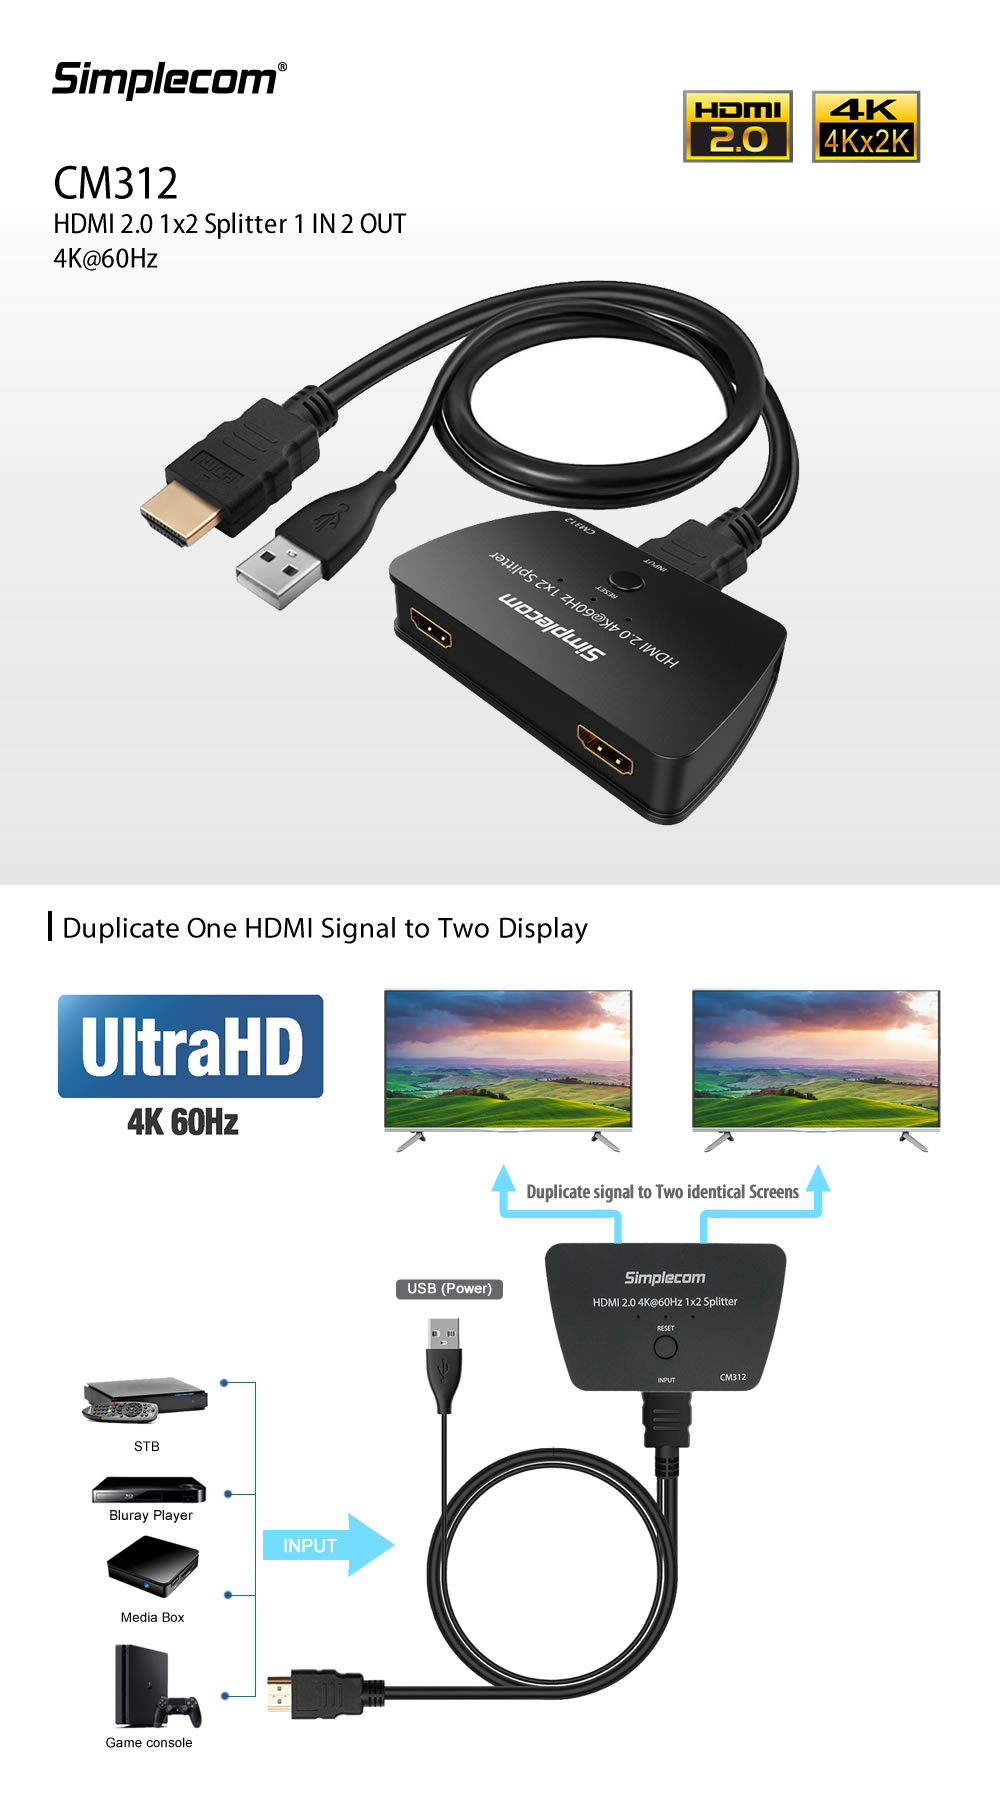 Simplecom CM312 HDMI 2 0 1x2 Splitter 1 In 2 Out 4K@60Hz UHD 3D 2